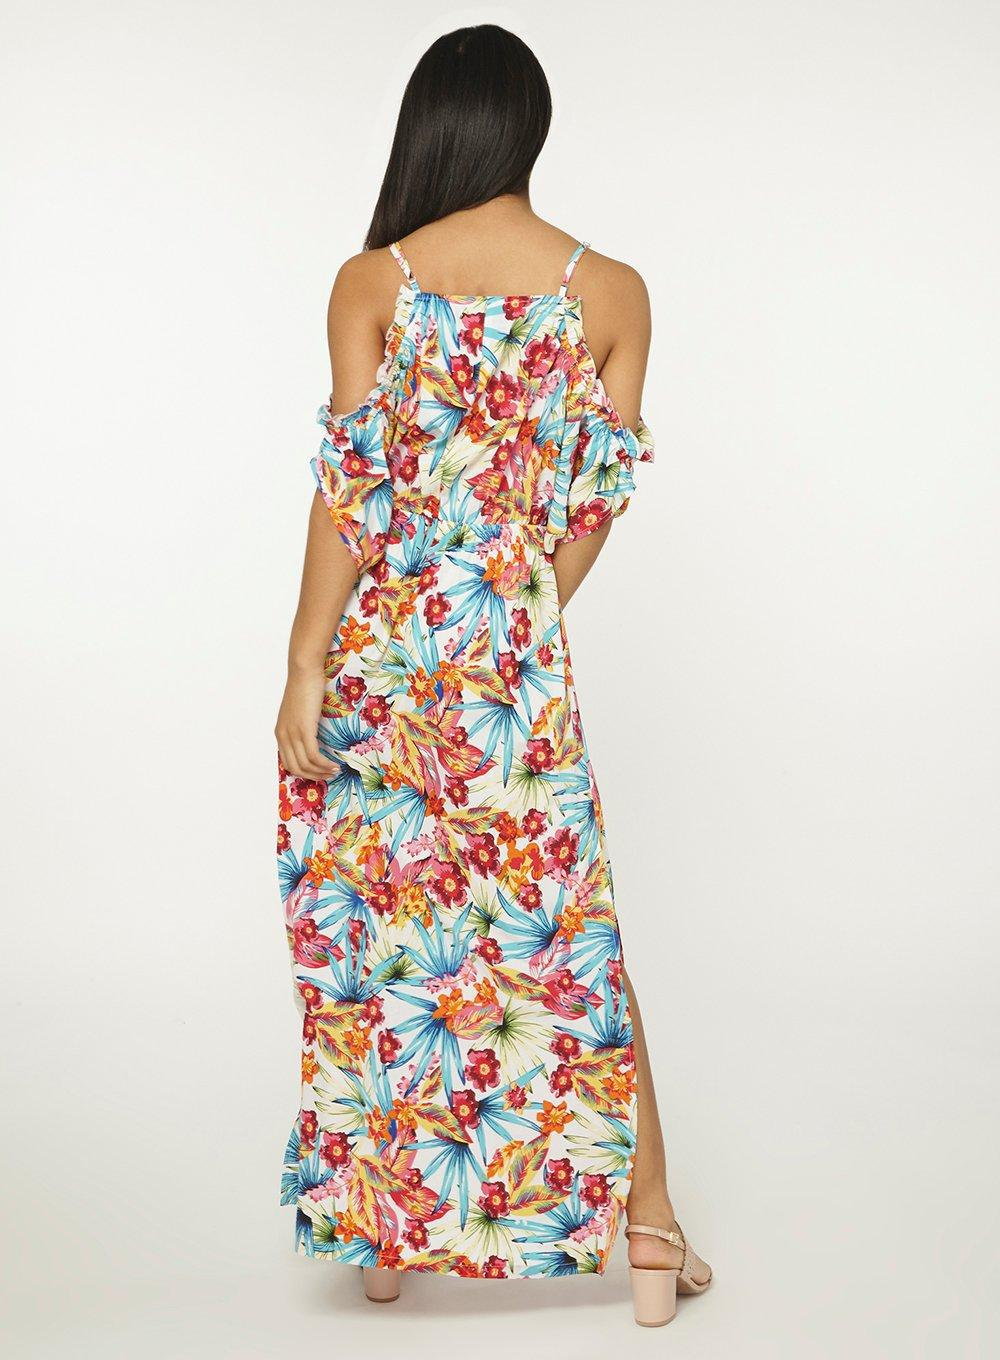 aa456553e9 Gallery. Previously sold at: Dorothy Perkins · Women's Ivory Dresses  Women's Tropical ...